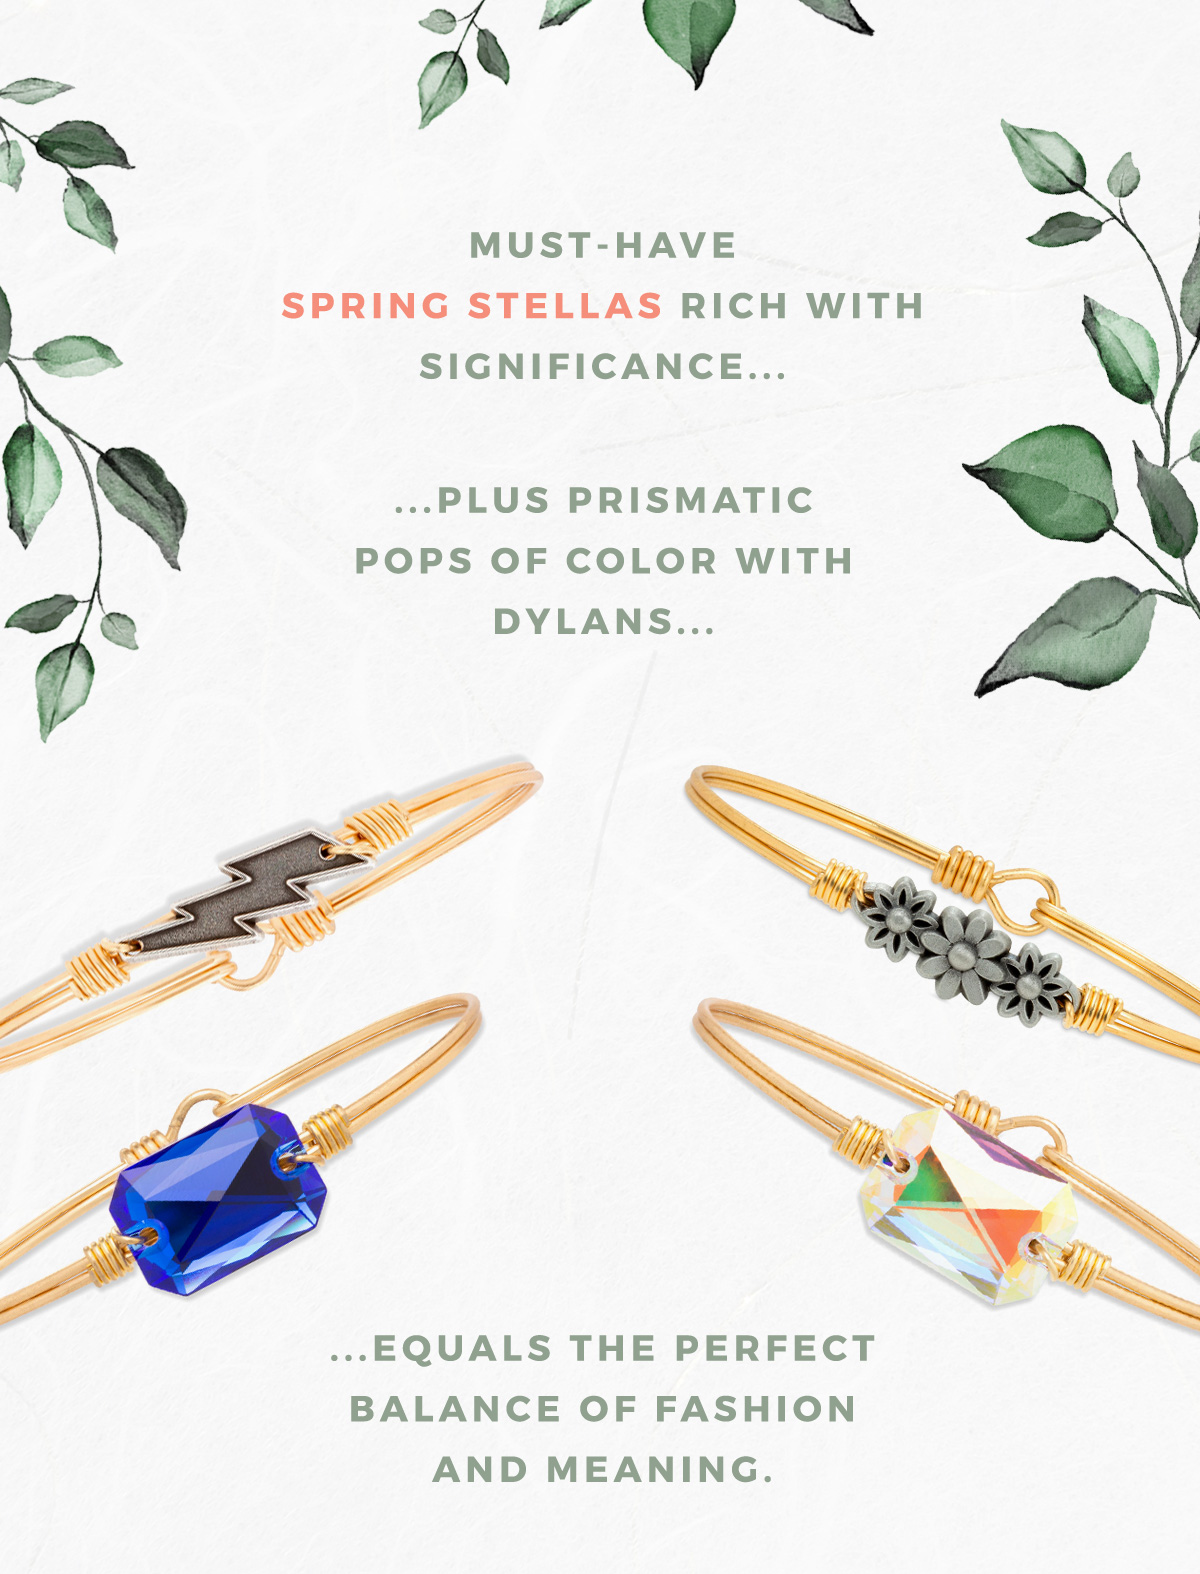 MUST-HAVE SPRING STELLAS RICH WITH SIGNIFICANCE...PLUS PRISMATIC POPS OF COLOR WITH DYLANS...EQUALS THE PERFECT BALANCE OF FASHION AND MEANING.